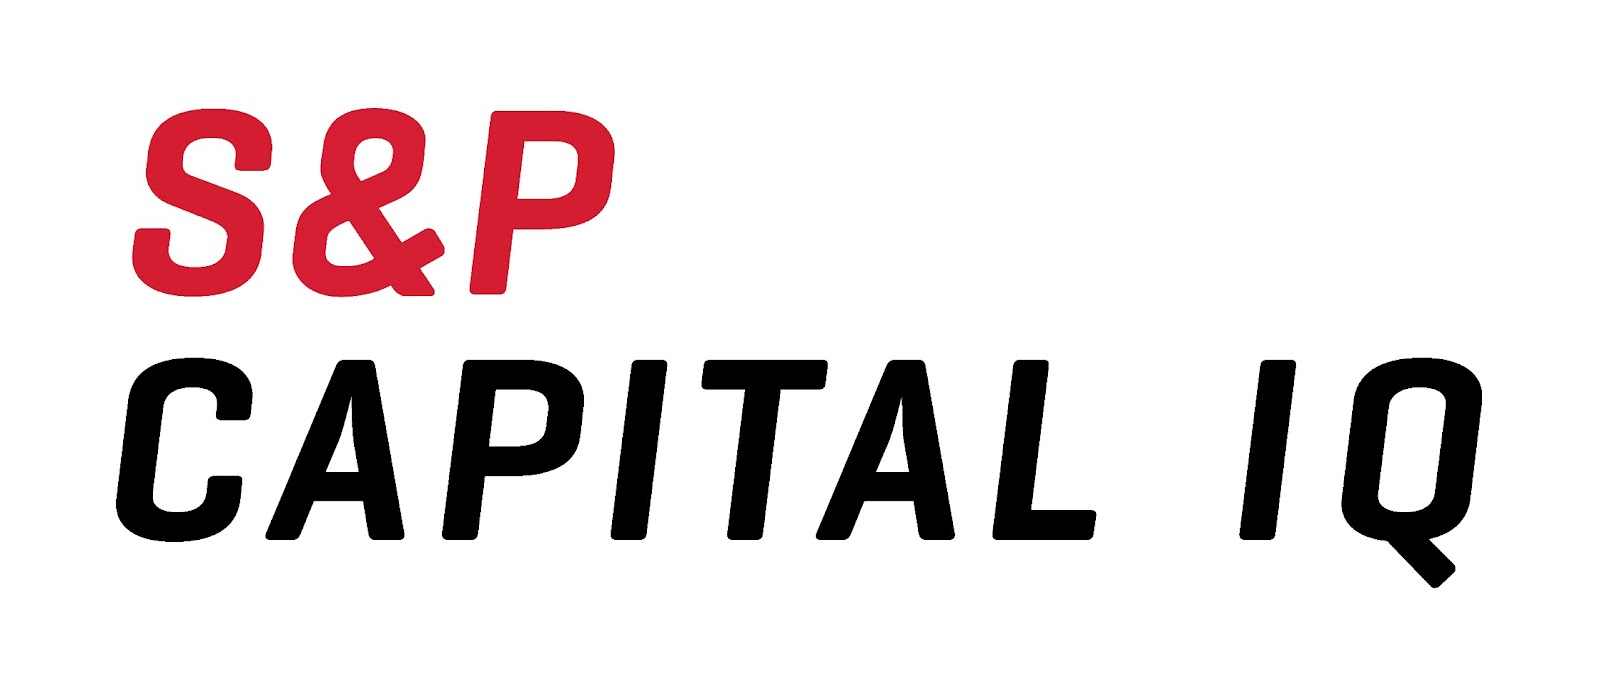 S&P CAPITAL IQ INFORMATION SYSTEMS INDIA PVT LTD Reviews